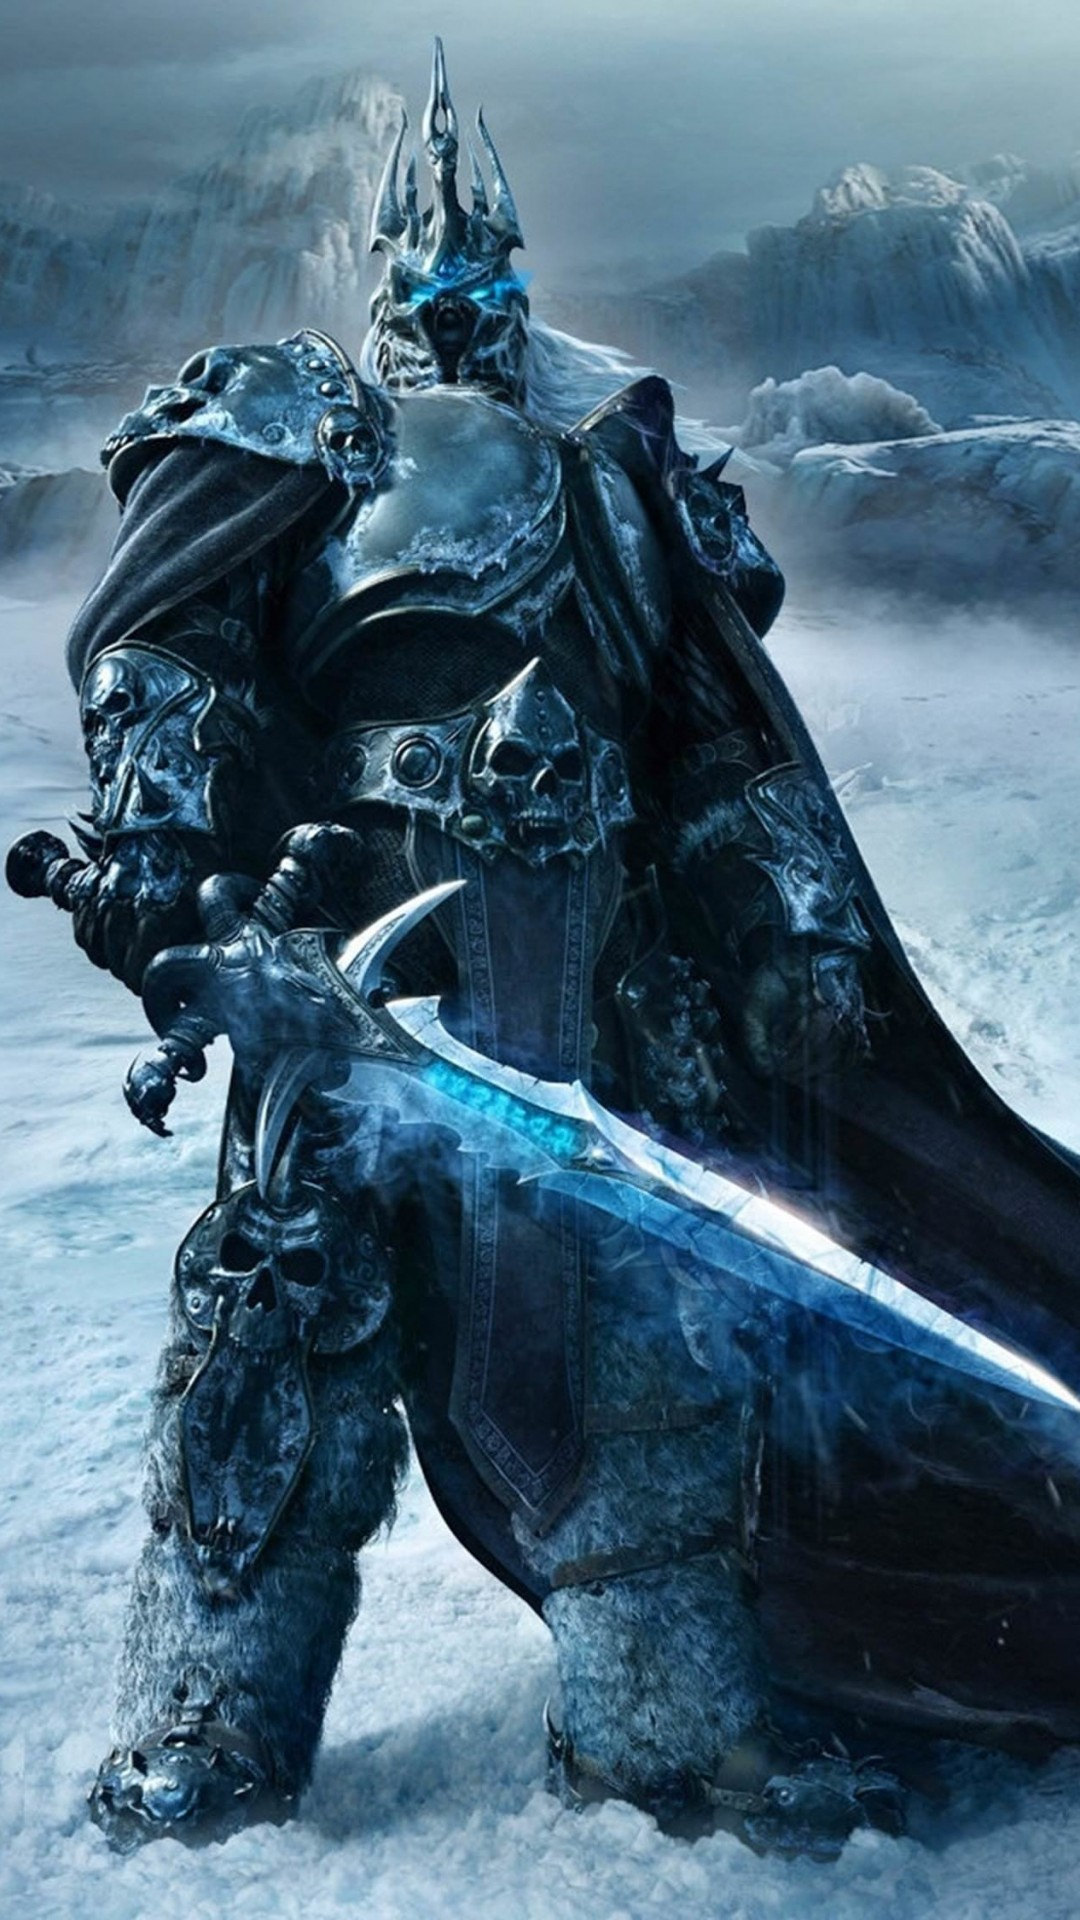 World of Warcraft: Wrath of the Lich King Wallpaper for Google Nexus 5